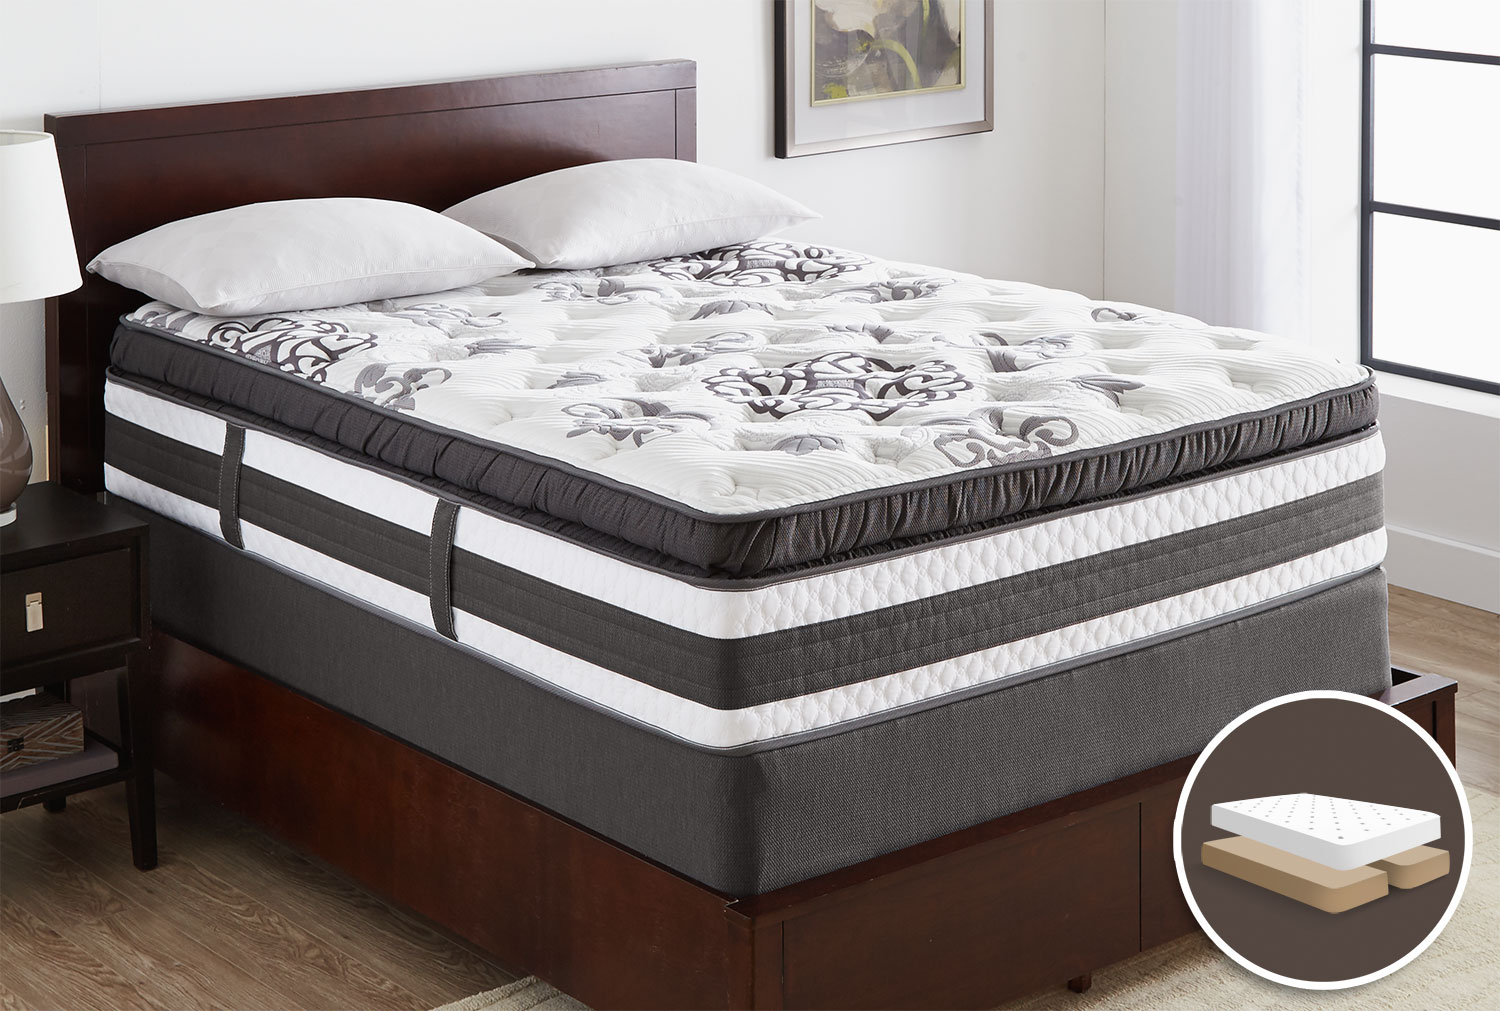 Mattresses and Bedding - Serta iCollection Hopedale Super Pillow-Top Plush Queen Set with Split Boxspring